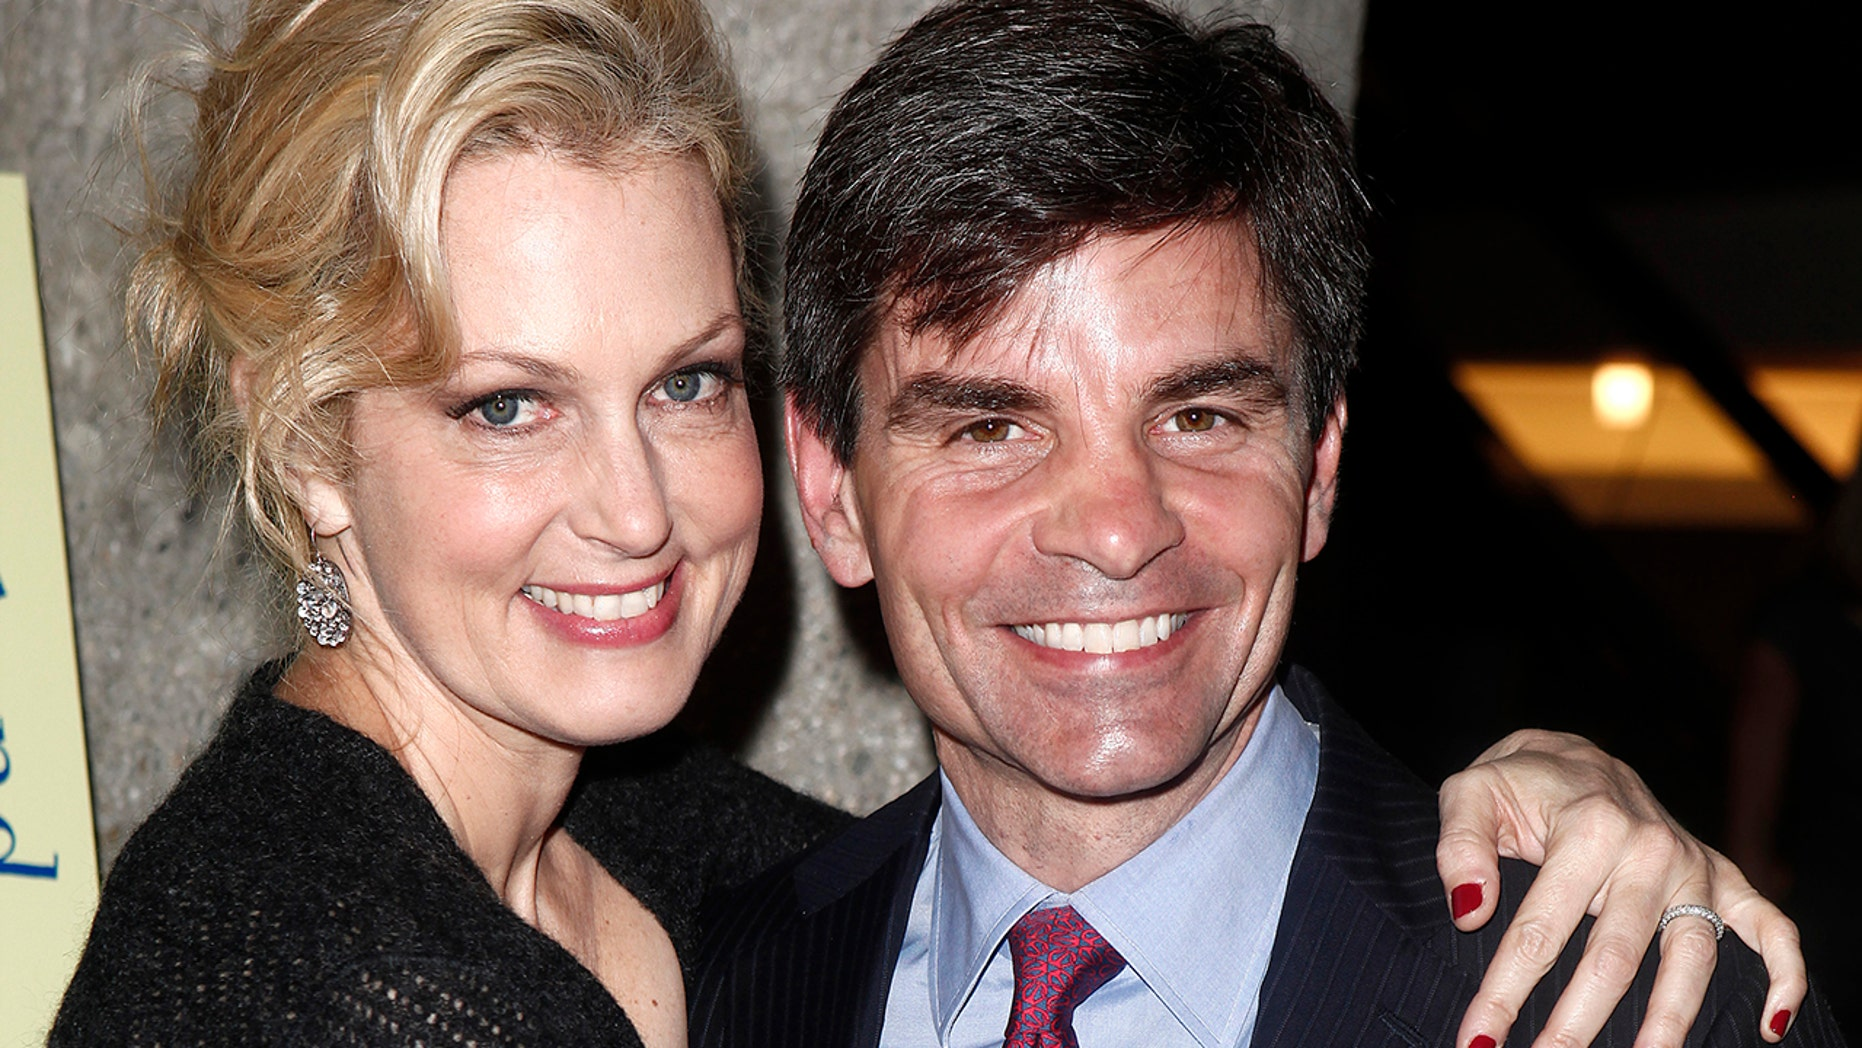 Actress and author Ali Wentworth poses with her husband George  Stephanopoulos at her